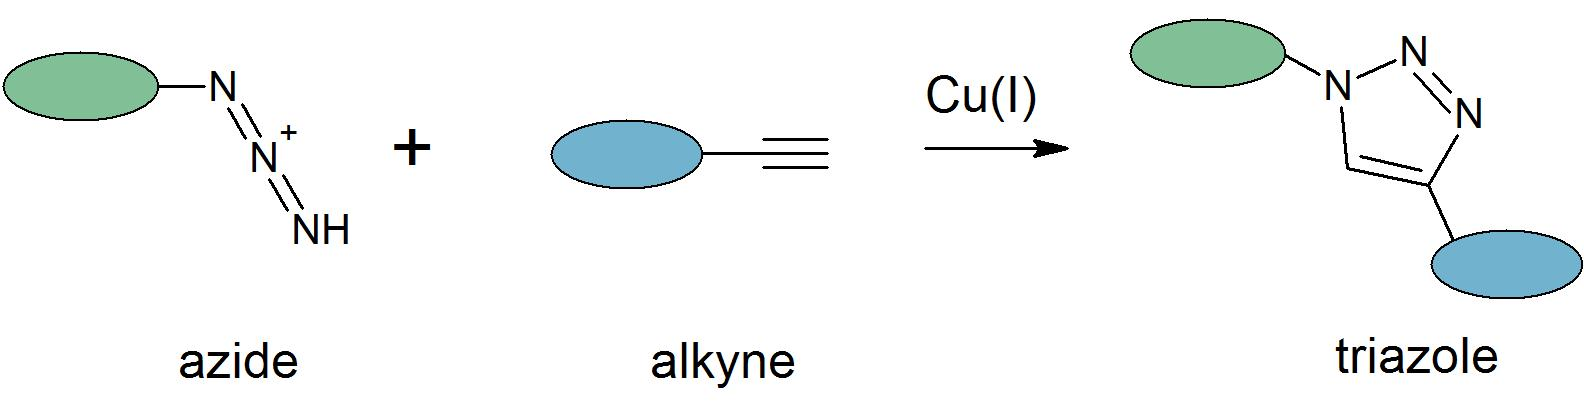 Azide-alkyne cycloadditionAlkyne